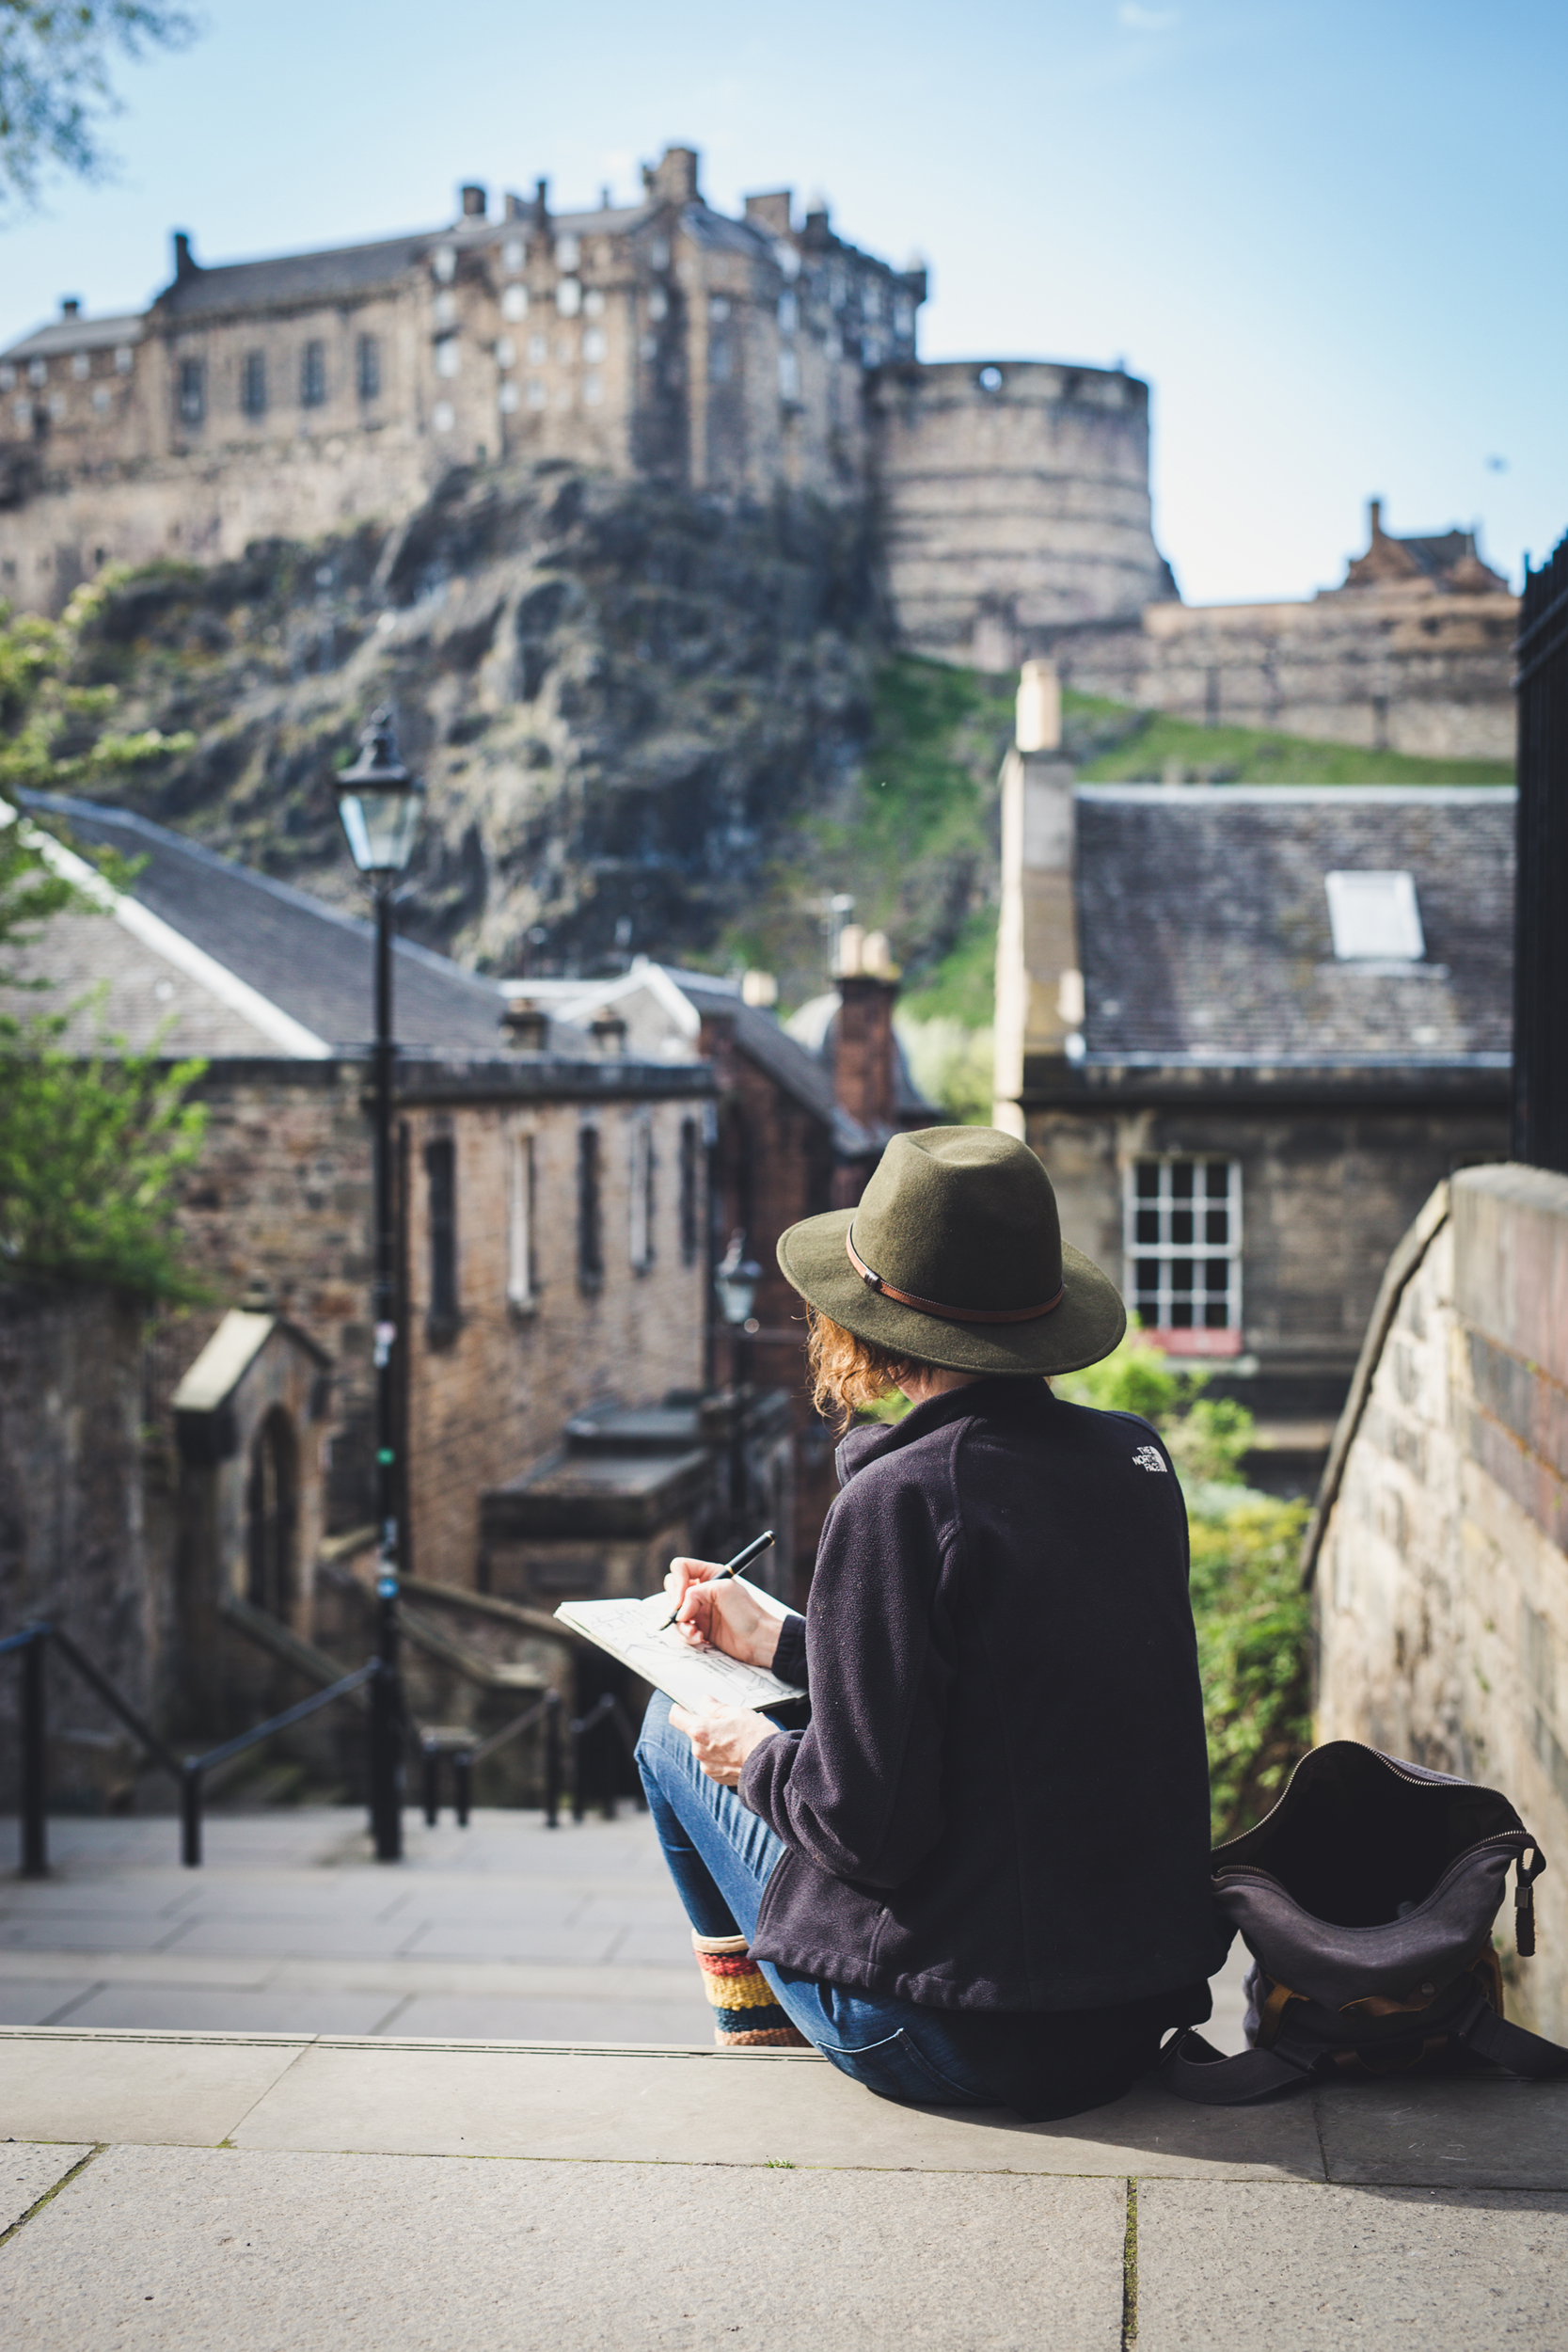 Sketching out in the world is one of my favourite things to do… Here I am in a treasure of a city - Edinburgh!